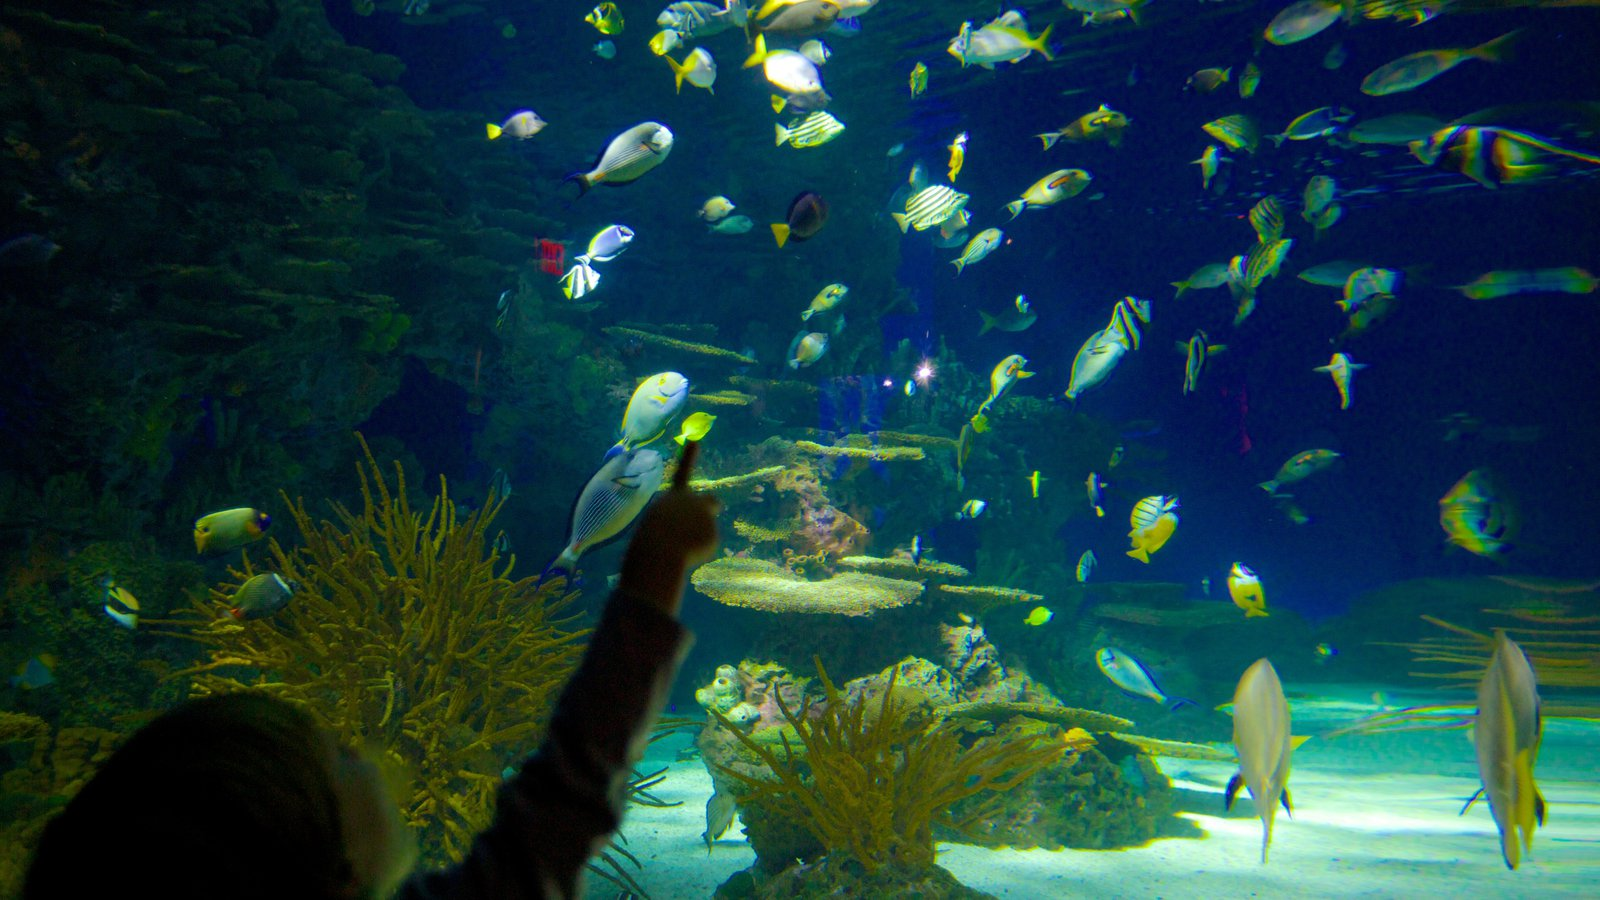 Animal Pictures View Images Of Ripley 39 S Aquarium Of The